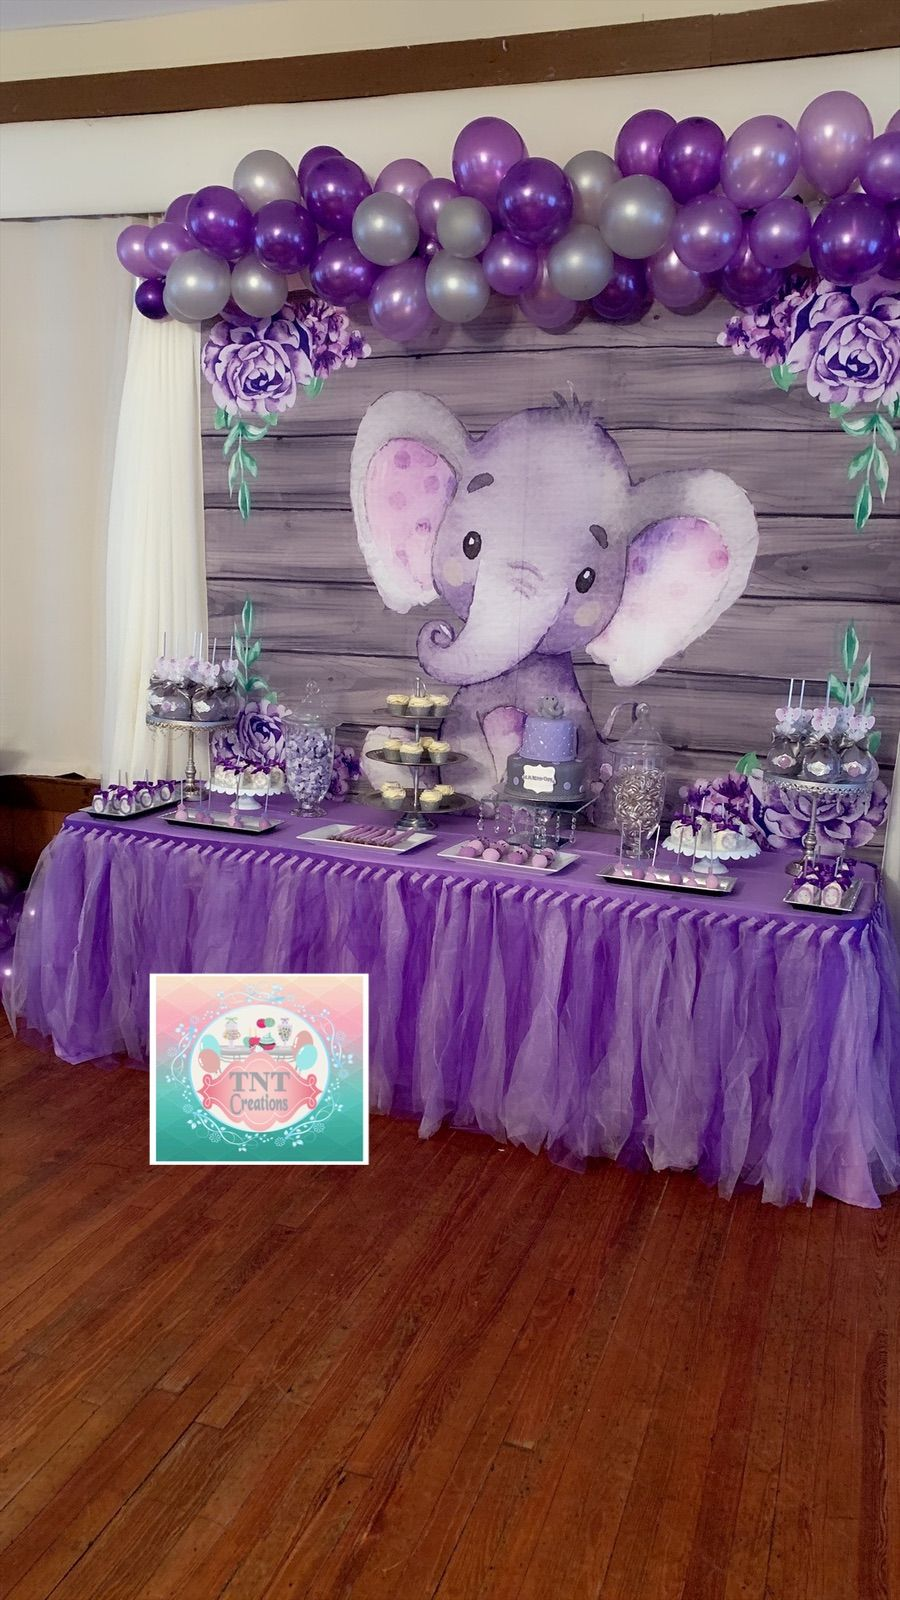 Purple Baby Shower Themes For Girls : purple, shower, themes, girls, Elephant, Babyshower, Shower, Purple,, Themes,, Theme